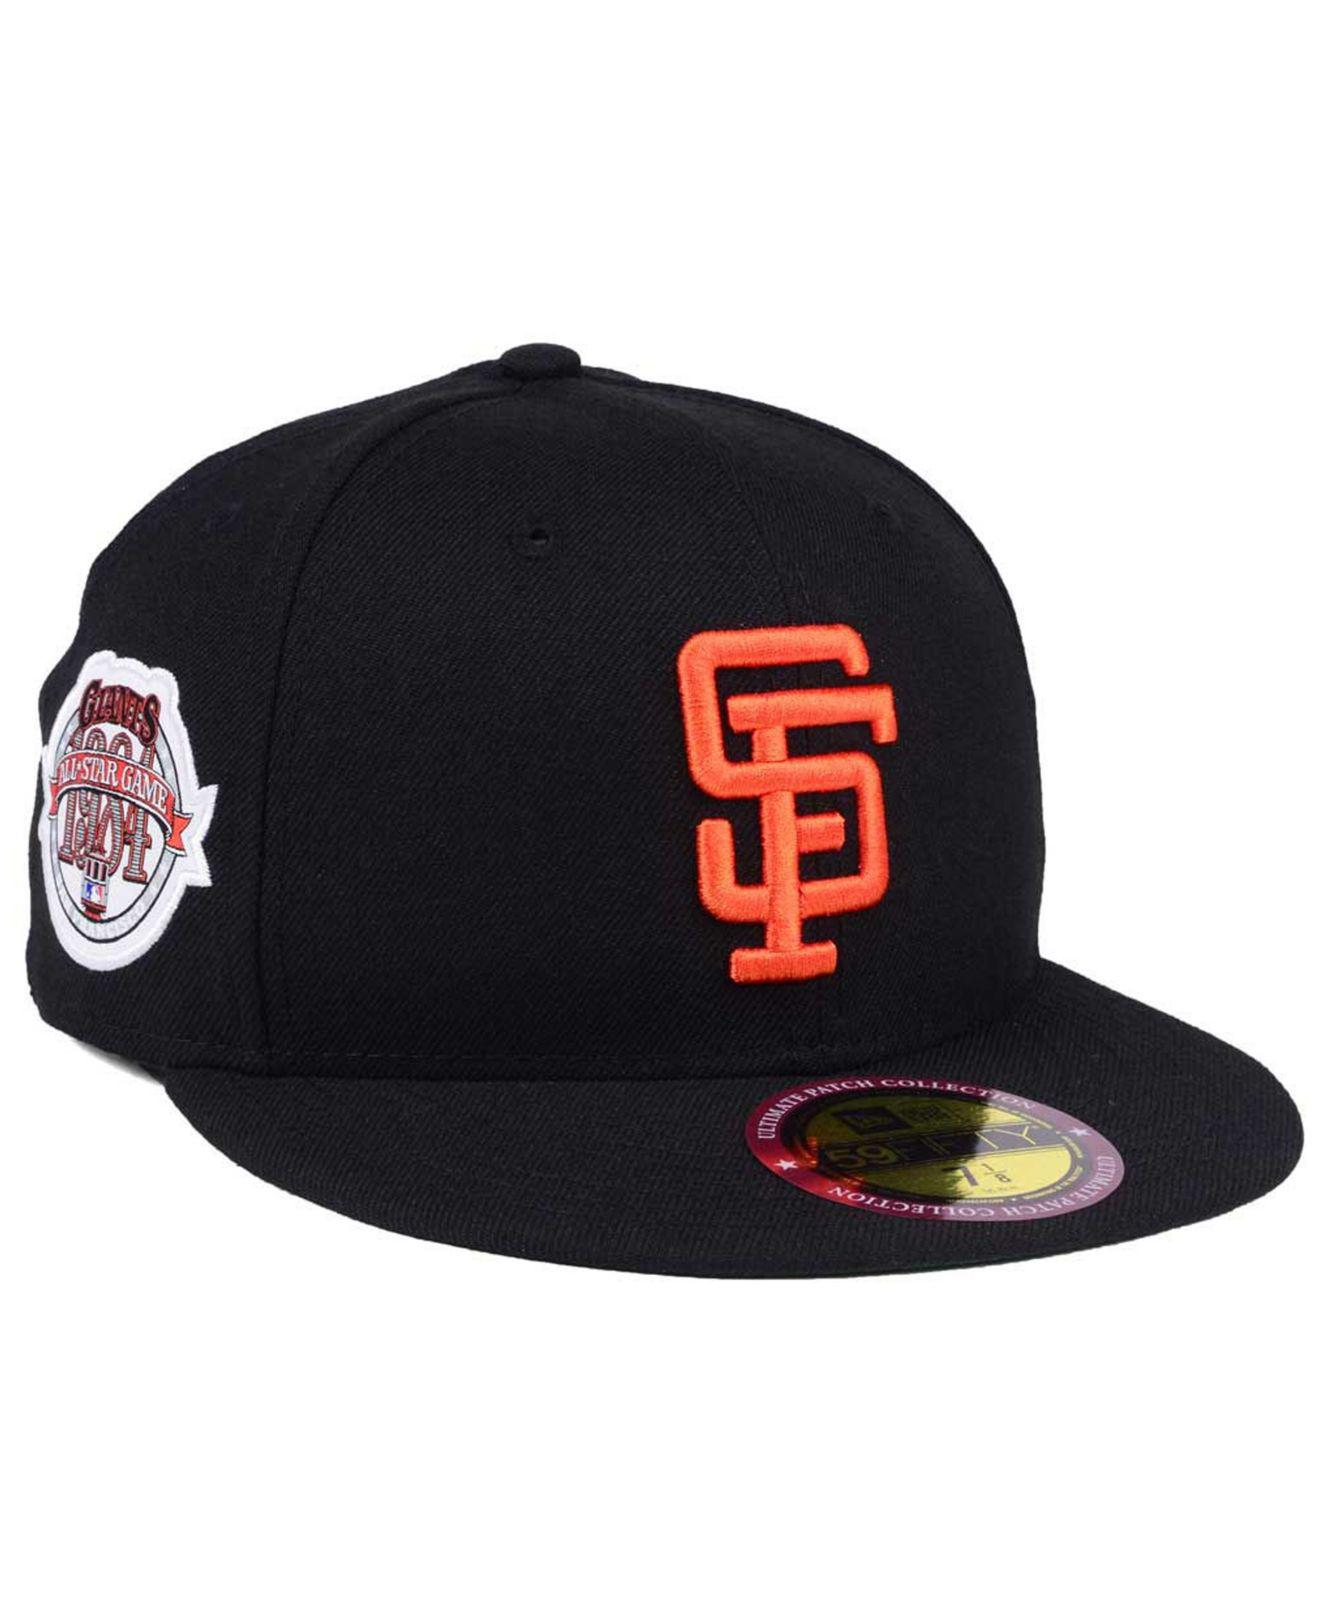 best service 52071 e4792 KTZ San Francisco Giants Ultimate Patch All Star Collection 59fifty ...